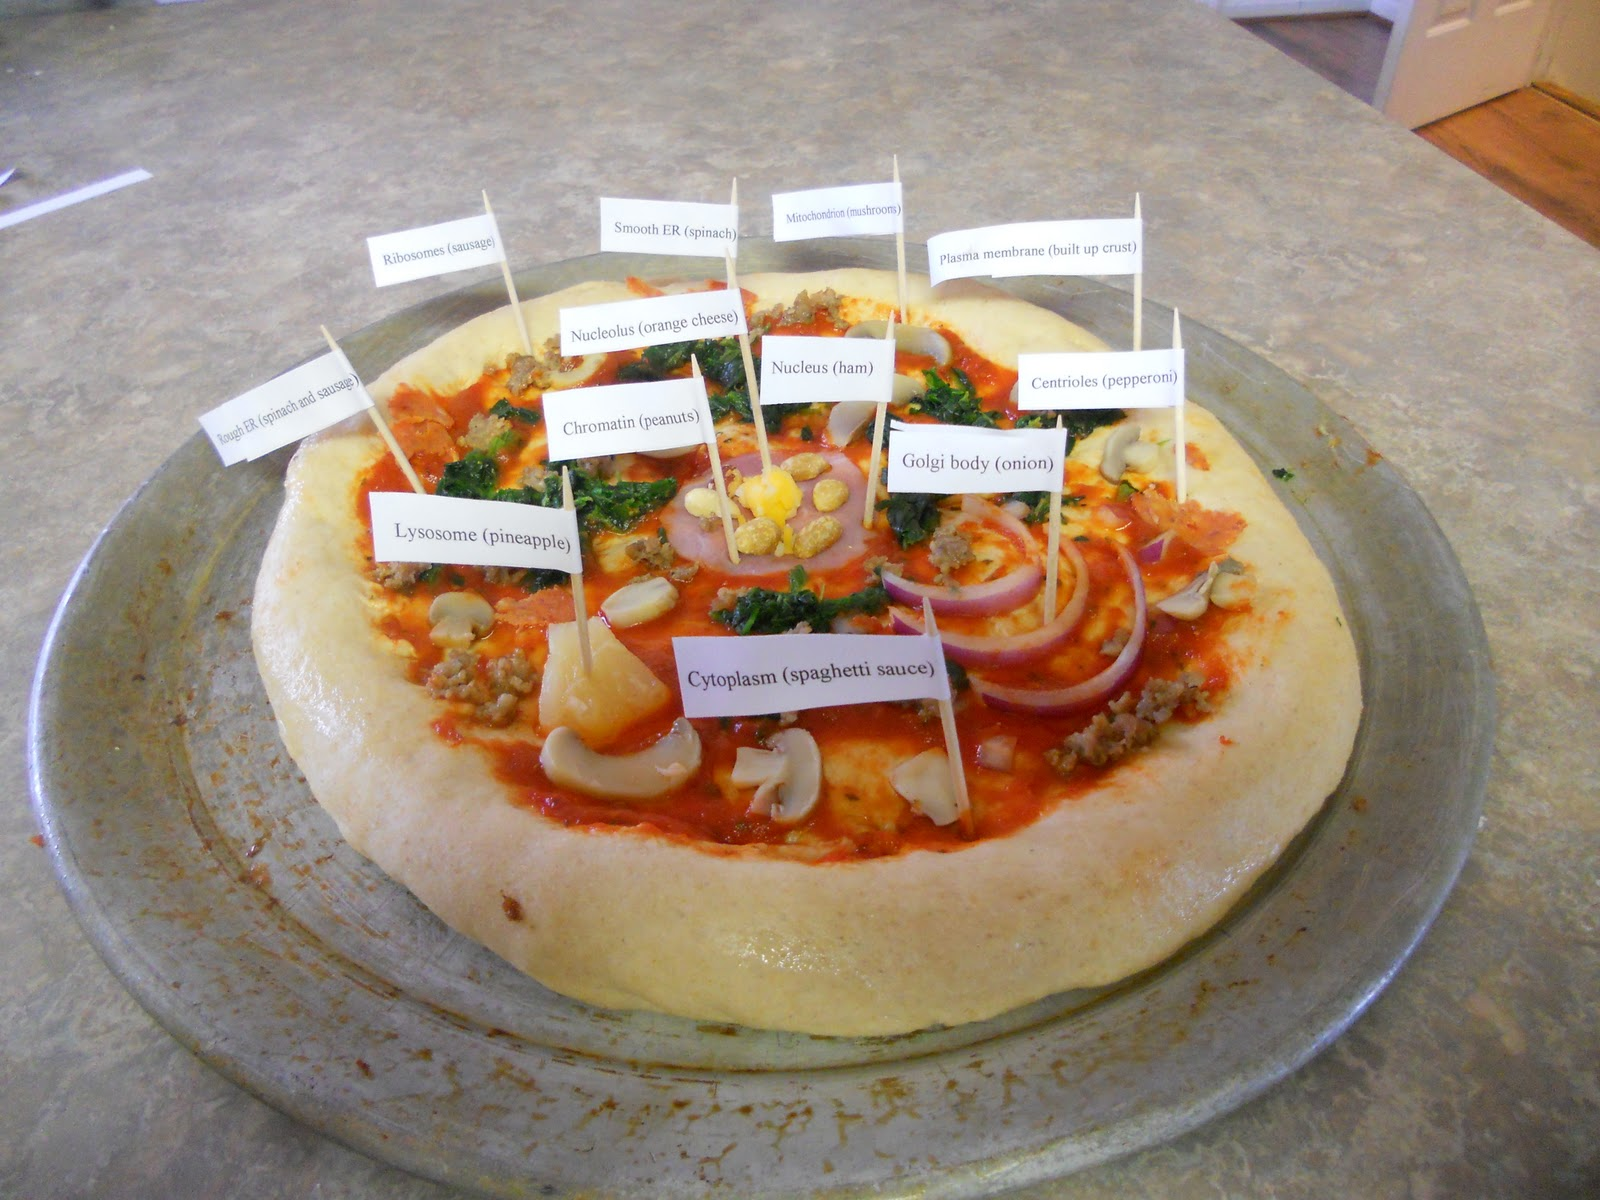 3D Animal Cell Project Ideas http://nonniesnotes.blogspot.com/2010/12/pizza-animal-cell-model.html